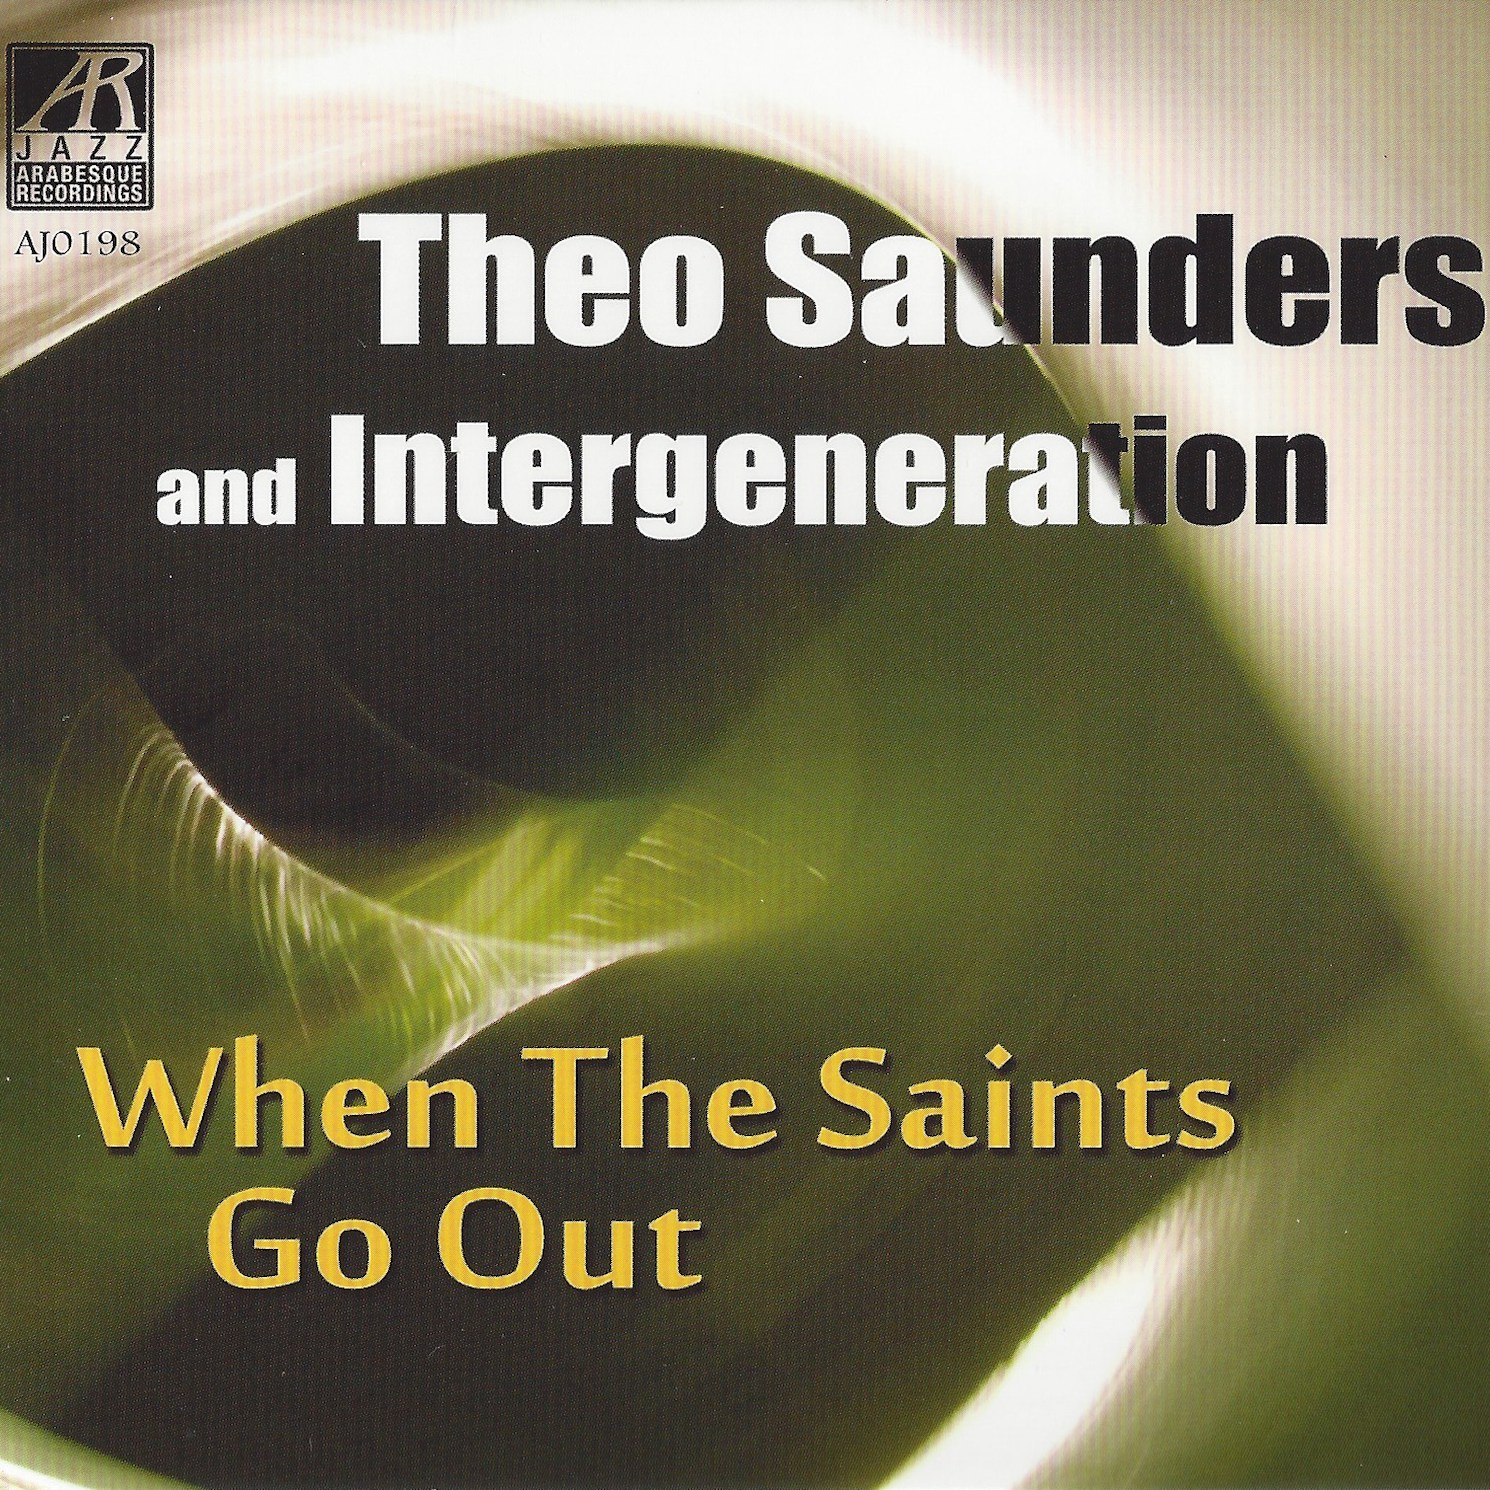 AJ0198  | When The Saints Go Out |  Theo Saunders